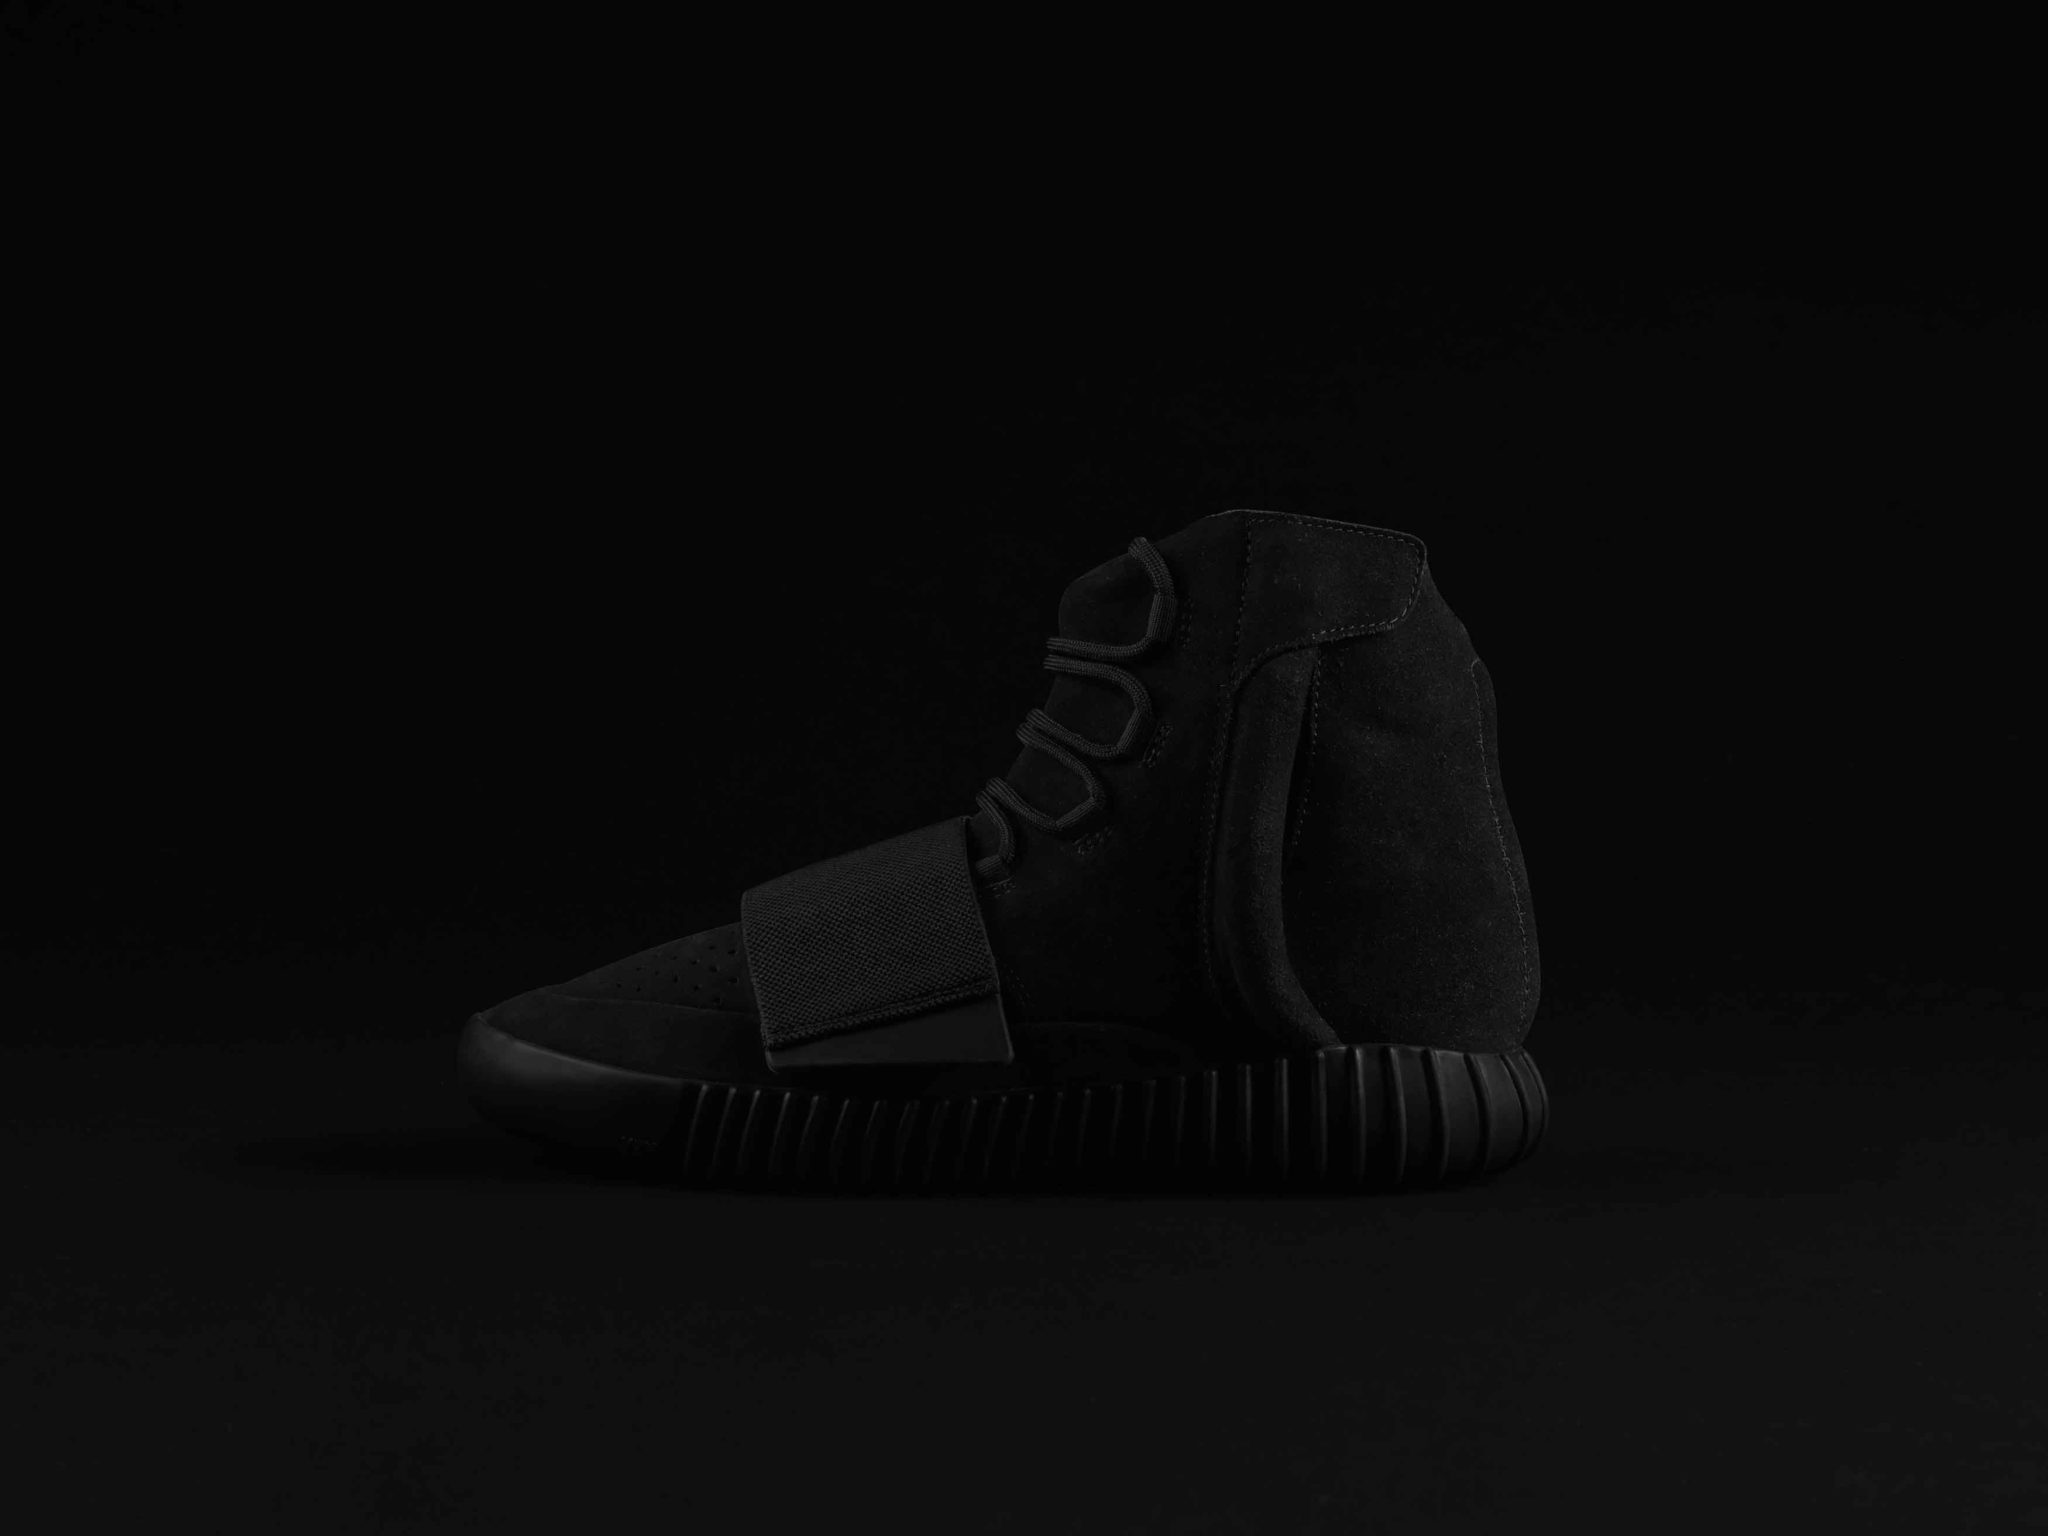 adidas Originals by Kanye West: YEEZY BOOST 750 IN ALL BLACK JUST LANDED THE PHILIPPINES